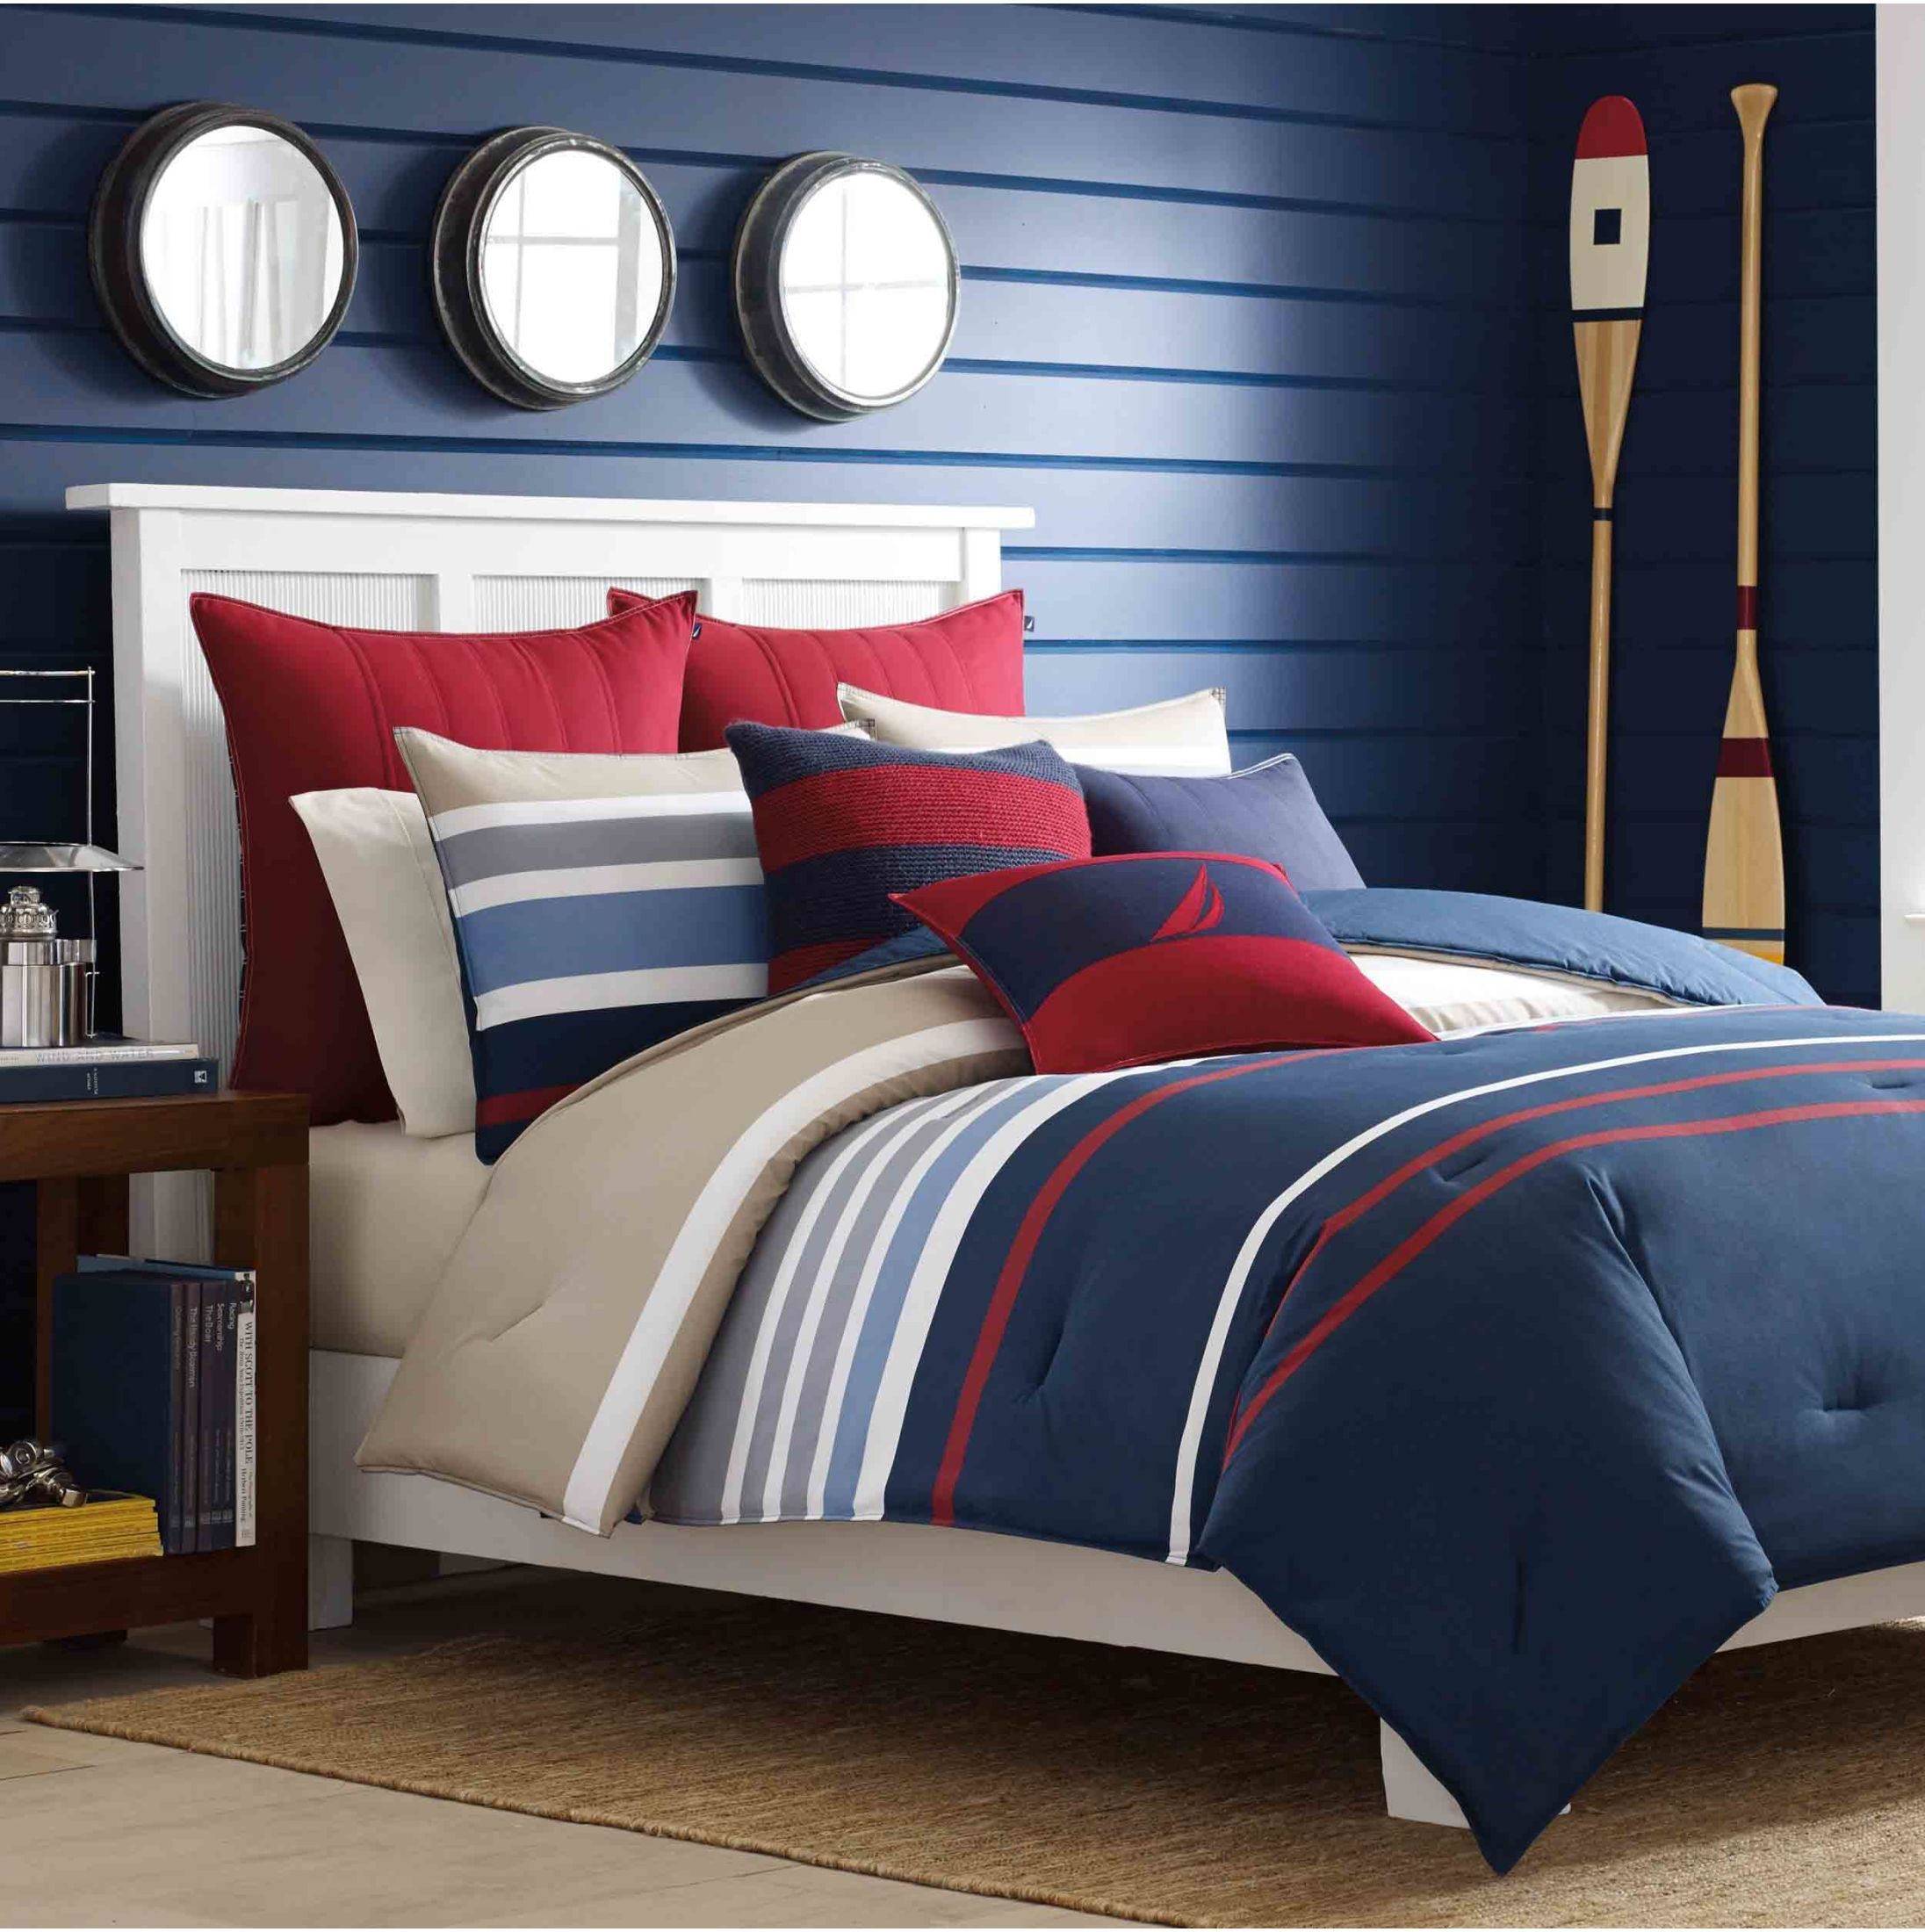 wl bedroom cream with queen pixel black xl set cover full boy teen duvets teal bedding red geo dillards bedsheet comforter size of sets complete covers sheet and a twin duvet white doona sale quilt grey detail block navy mf off gold king blue